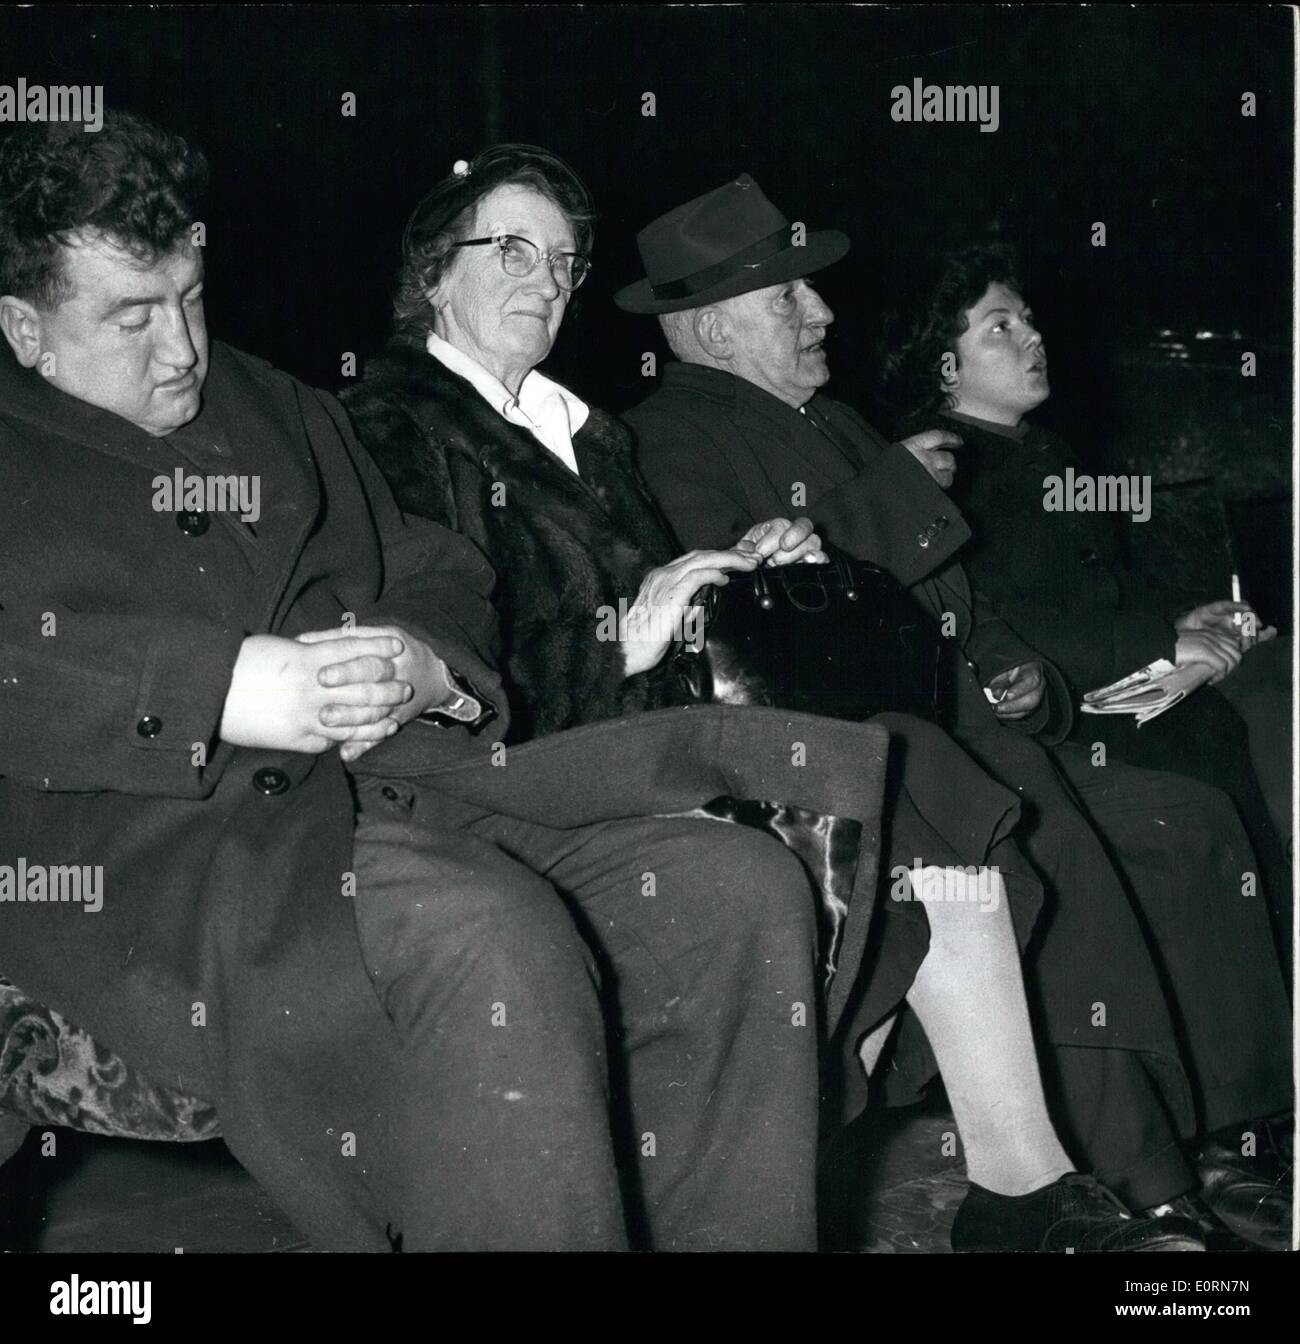 Mar. 03, 1960 - Brendan Behan goes to rehearsal of Brother's Play - and goes to sleep: Brendan Behan the well known Irsh playwright - attended a rehearsal in London last evening of the play ''Posterity be Damned'' - written by his brother Dominic - and fell asleep. Then he woke up red-faced and sullen and angry and shouted a rude word.. He followed this with a cry of ''rubbish''. Then he stalked out of the Metropolitan Theatre, Edgeware Road - but before going he declared passionately ''There were no murderers in the IRA''. Dominic's play suggests that there were - Stock Image